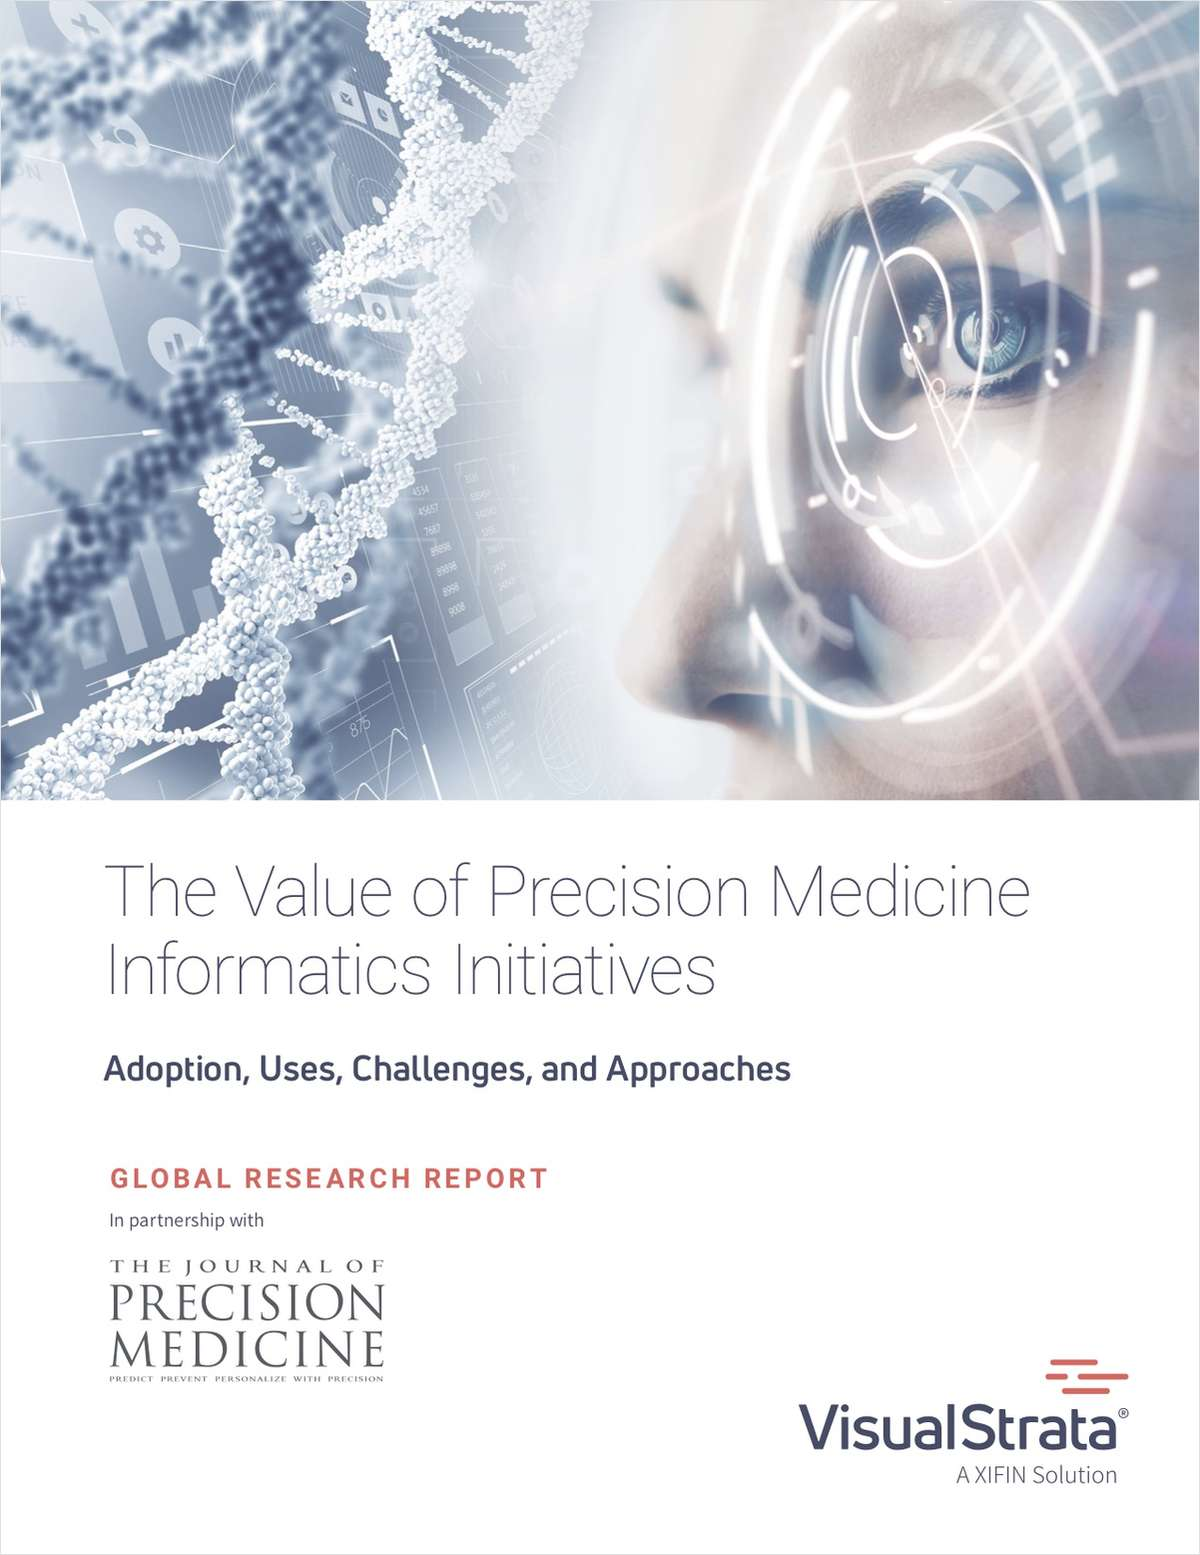 The Value of Precision Medicine Informatics Initiatives Research Findings